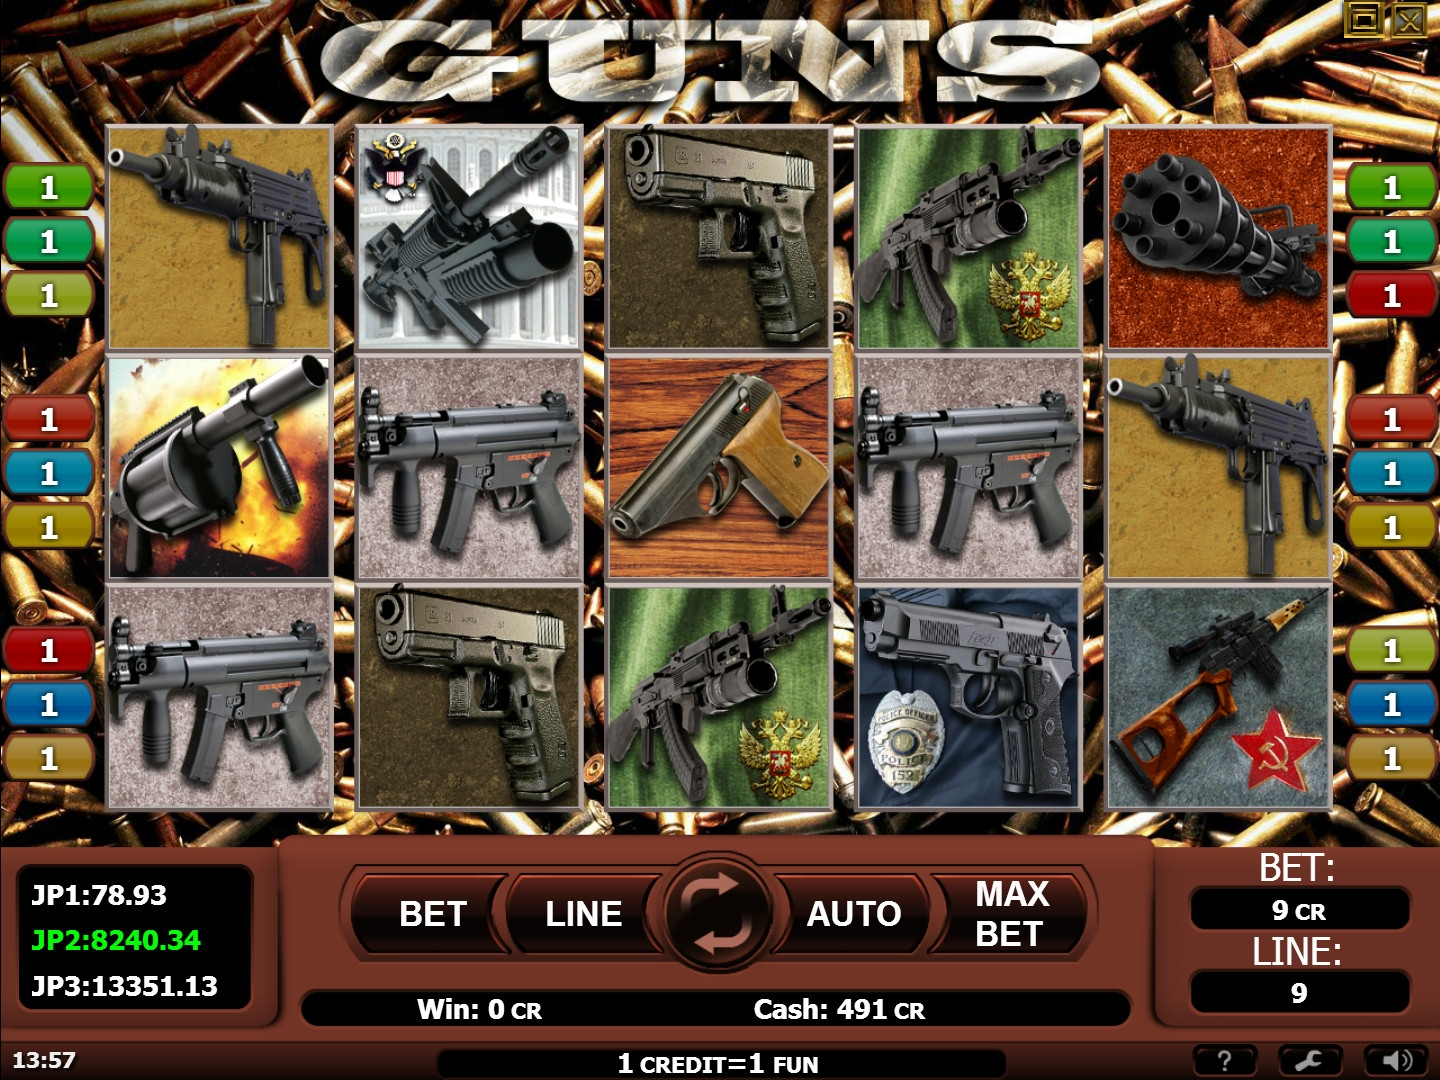 Guns (Guns) from category Slots